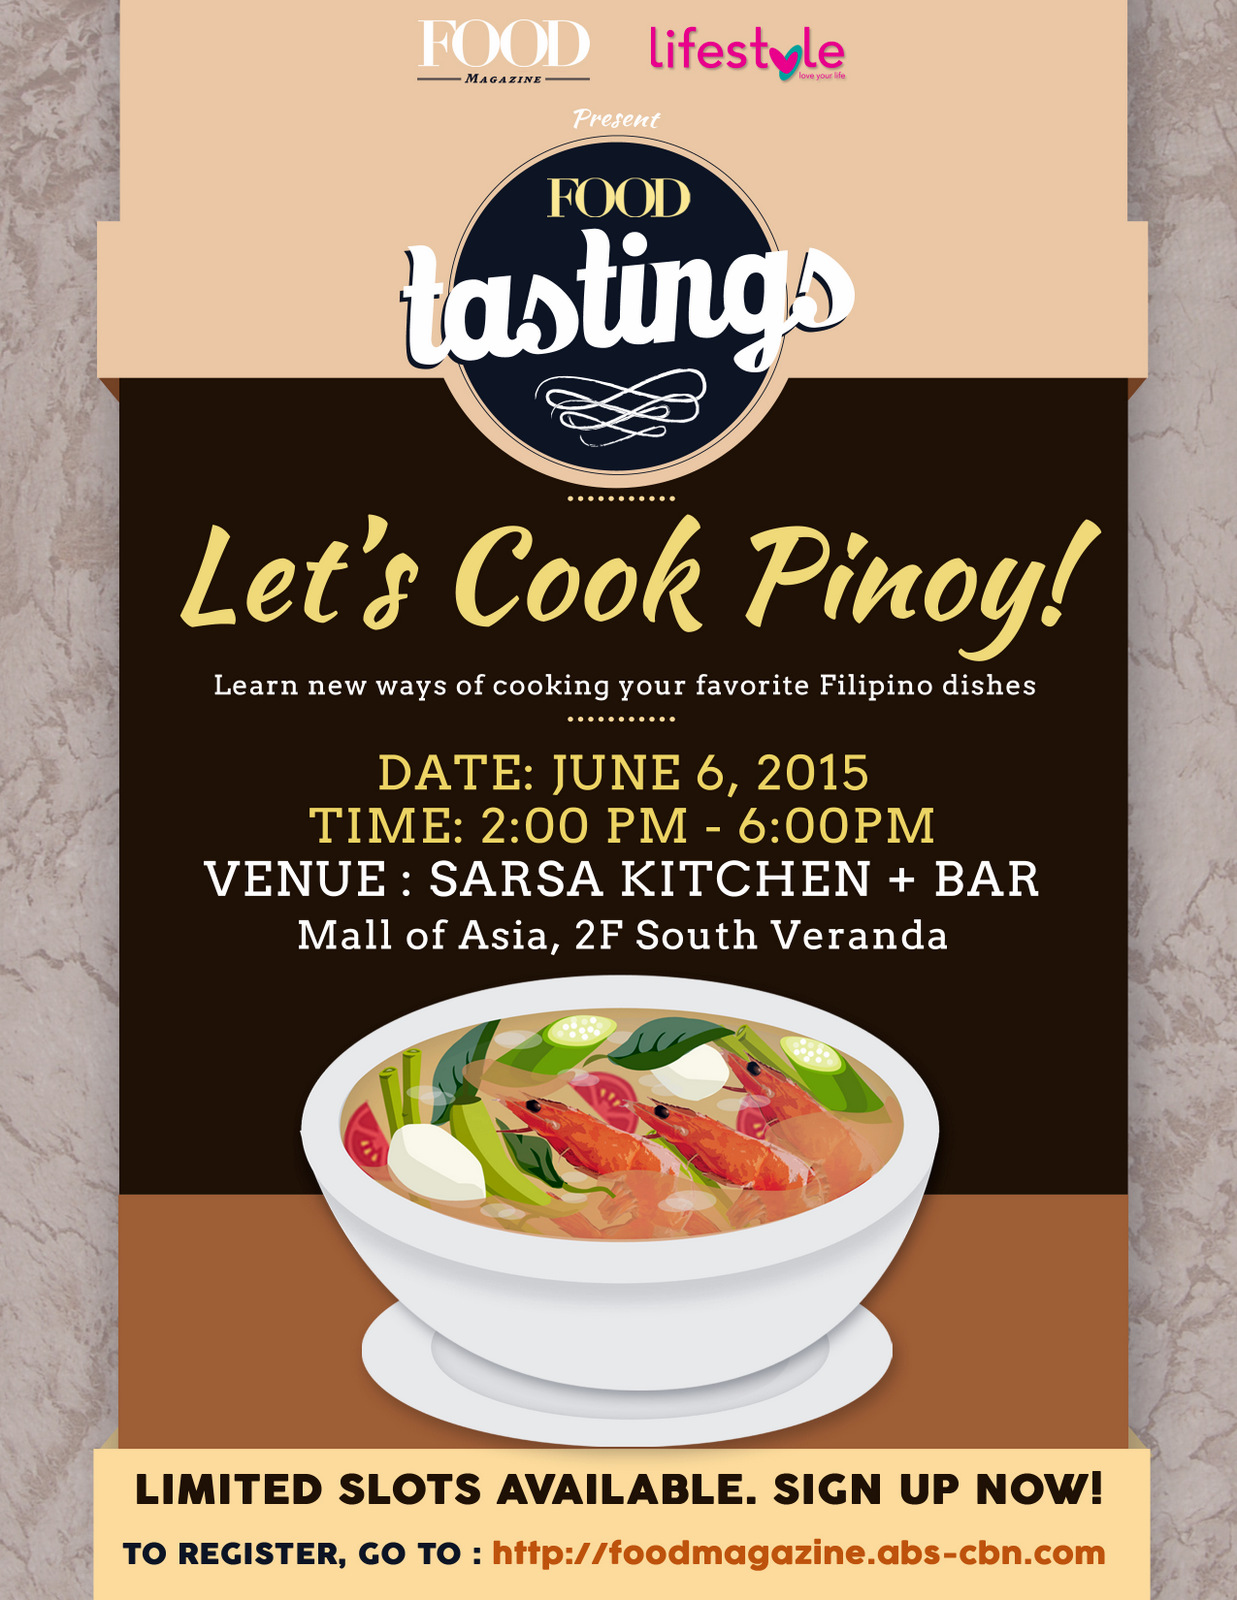 Food Tastings: Let's Cook Pinoy Cooking Class by Food Magazine